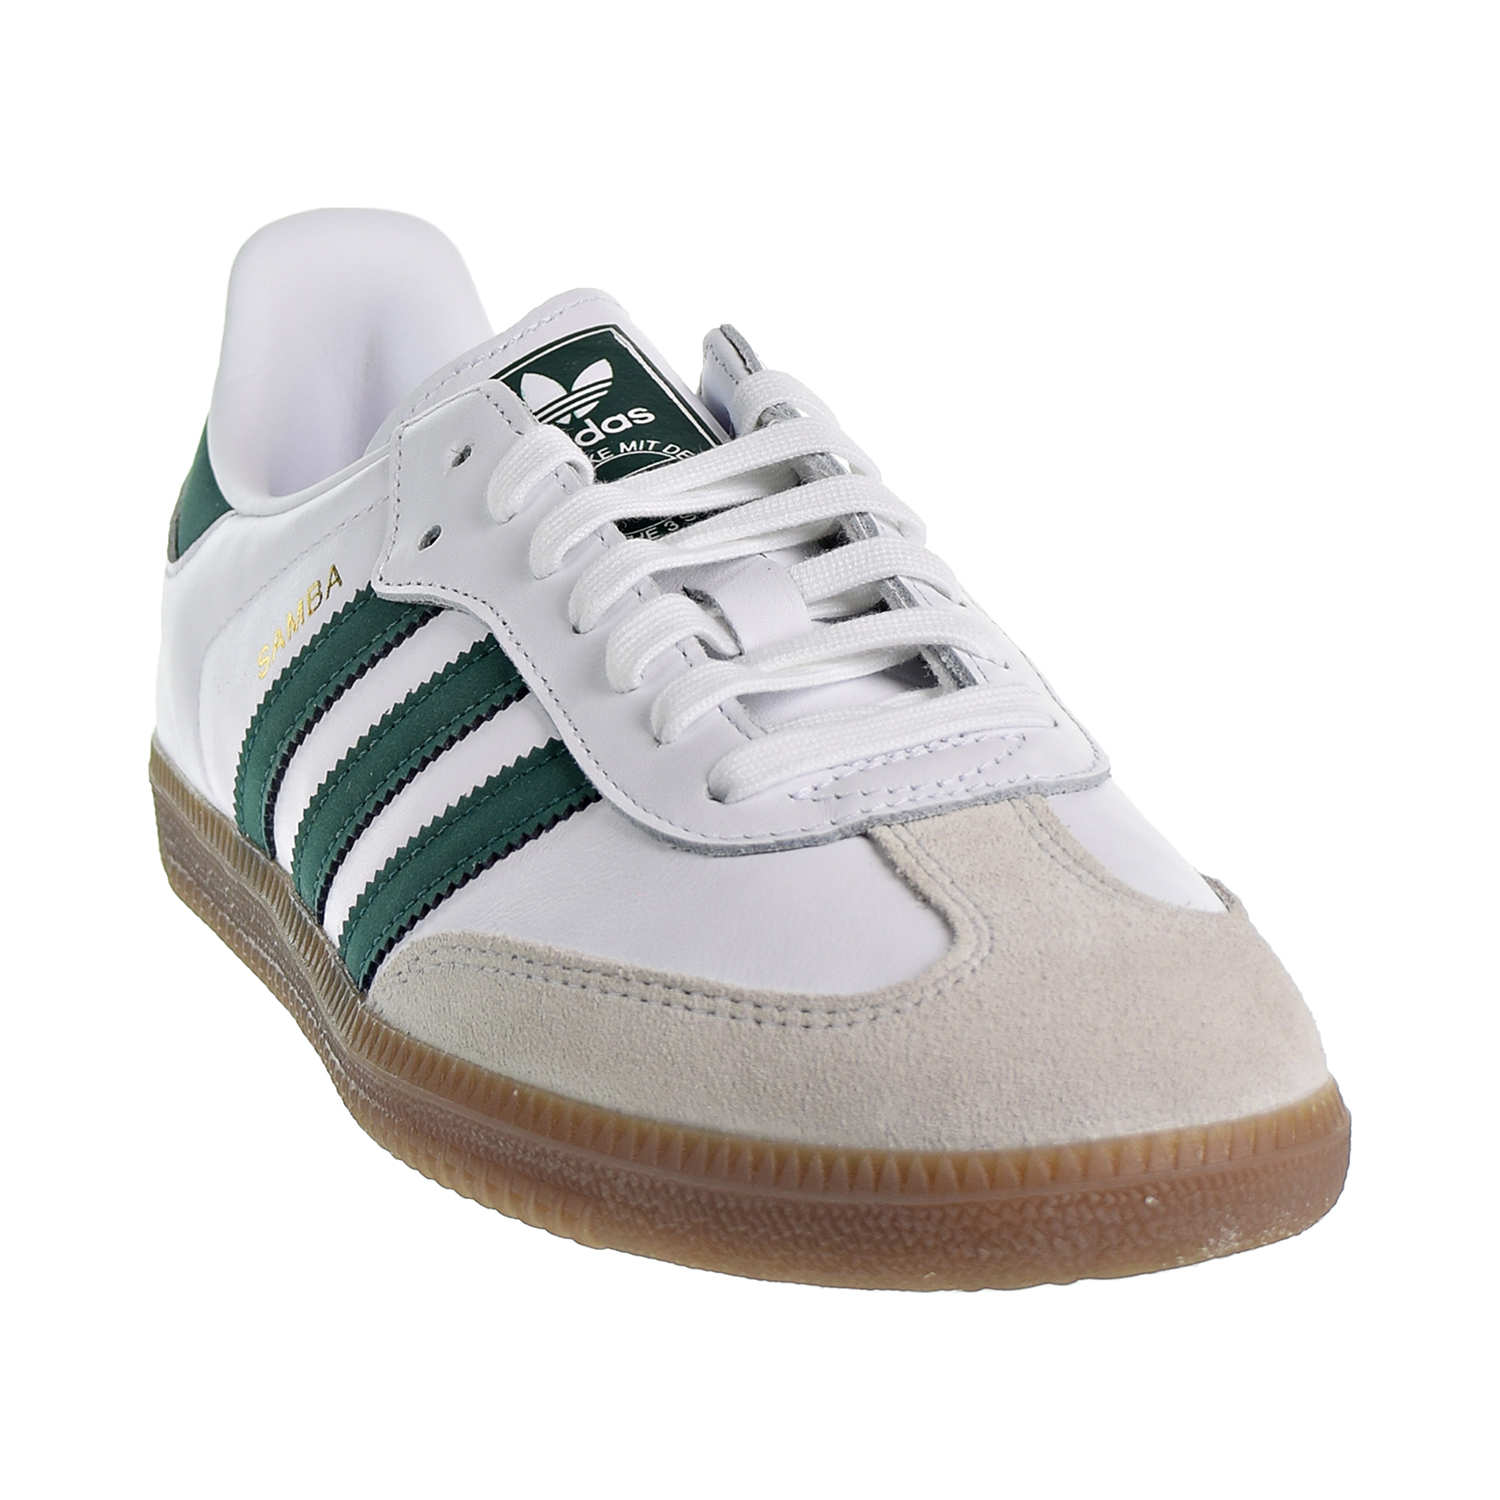 367bca8199b Adidas Samba OG Men s Shoes Cloud White Collegiate Green Crystal White  b75680